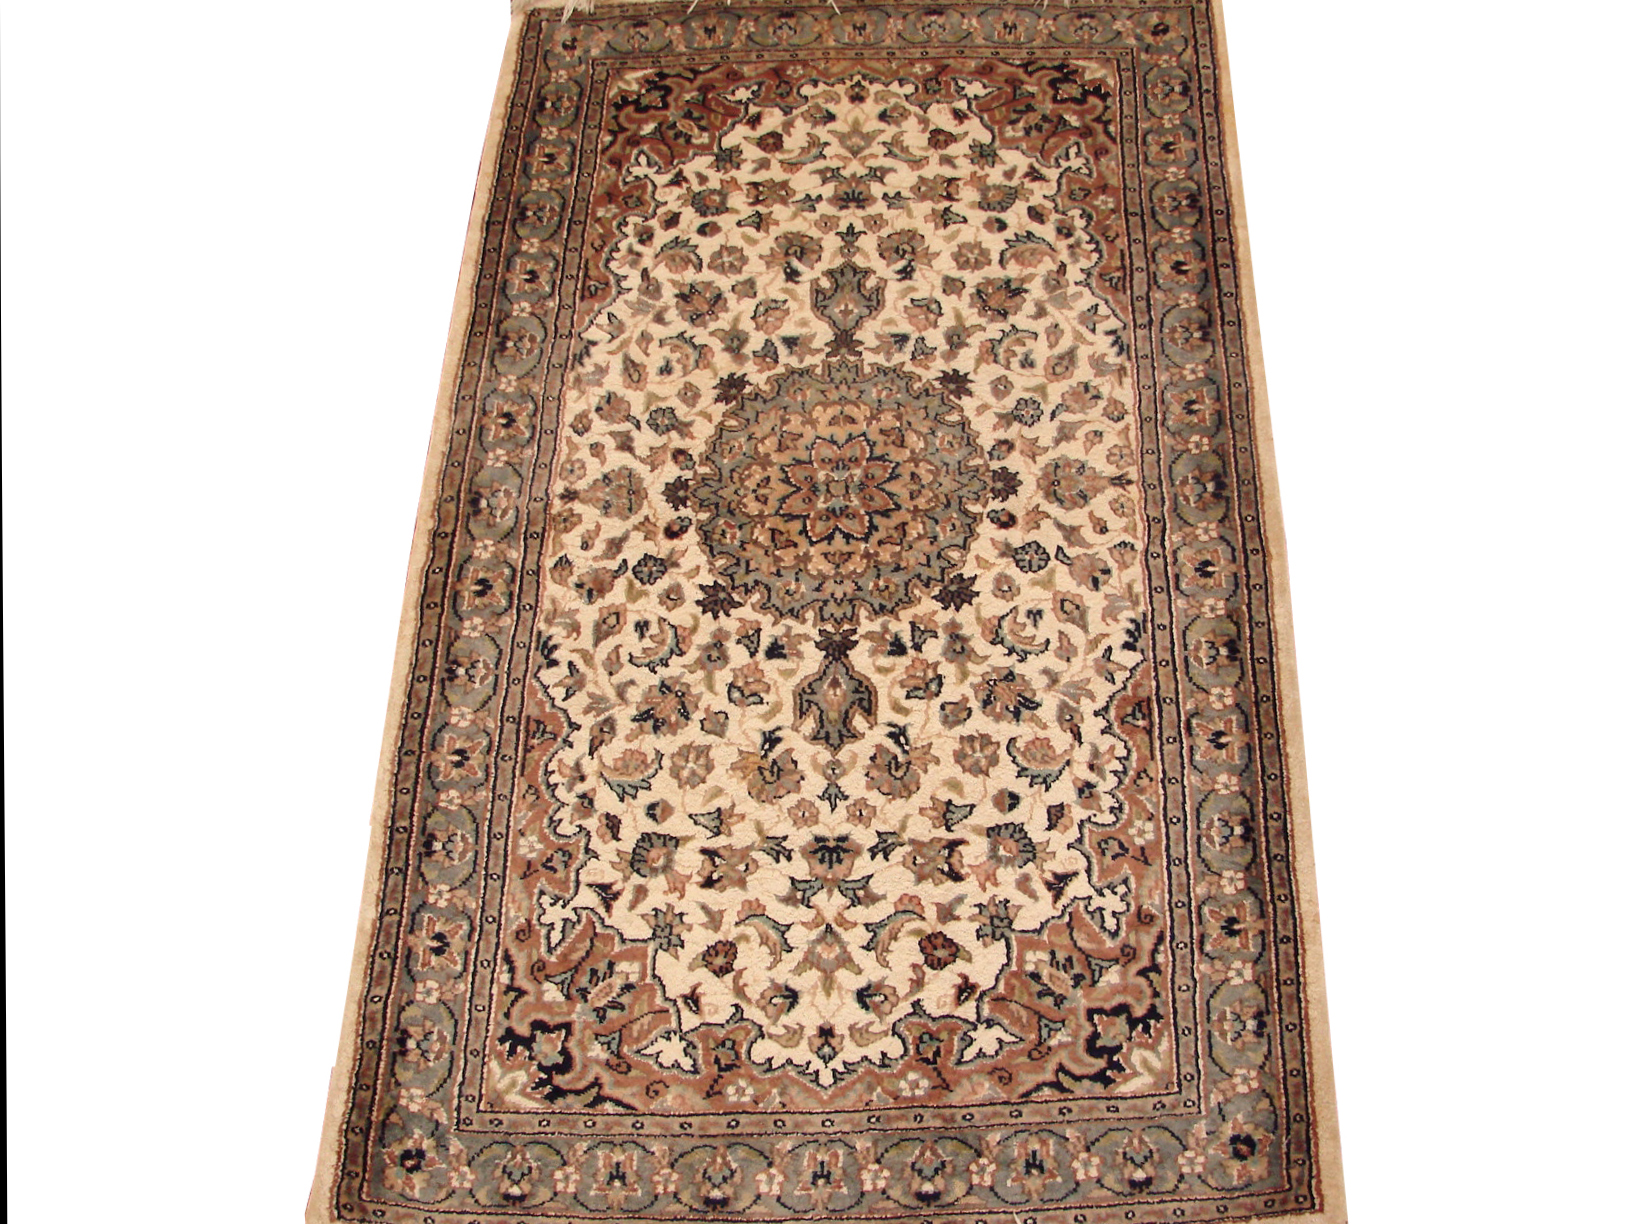 2X4 Traditional Hand Knotted Wool Area Rug - MR13490